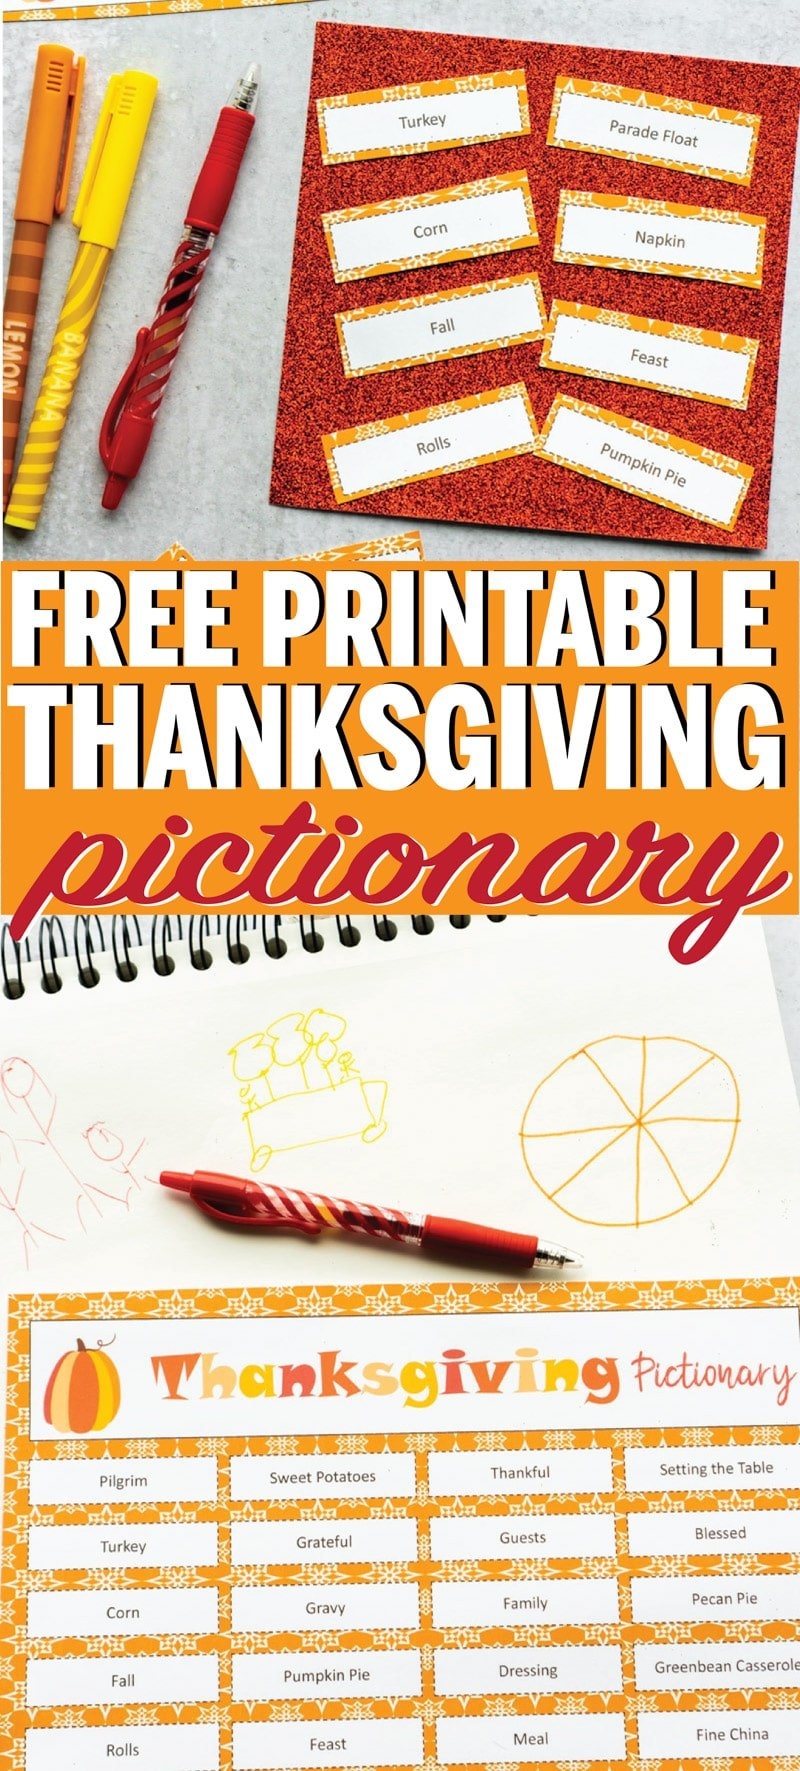 Free printable Thanksgiving pictionary words! Perfect Thanksgiving game for kids, adults, and everyone in between! via @playpartyplan